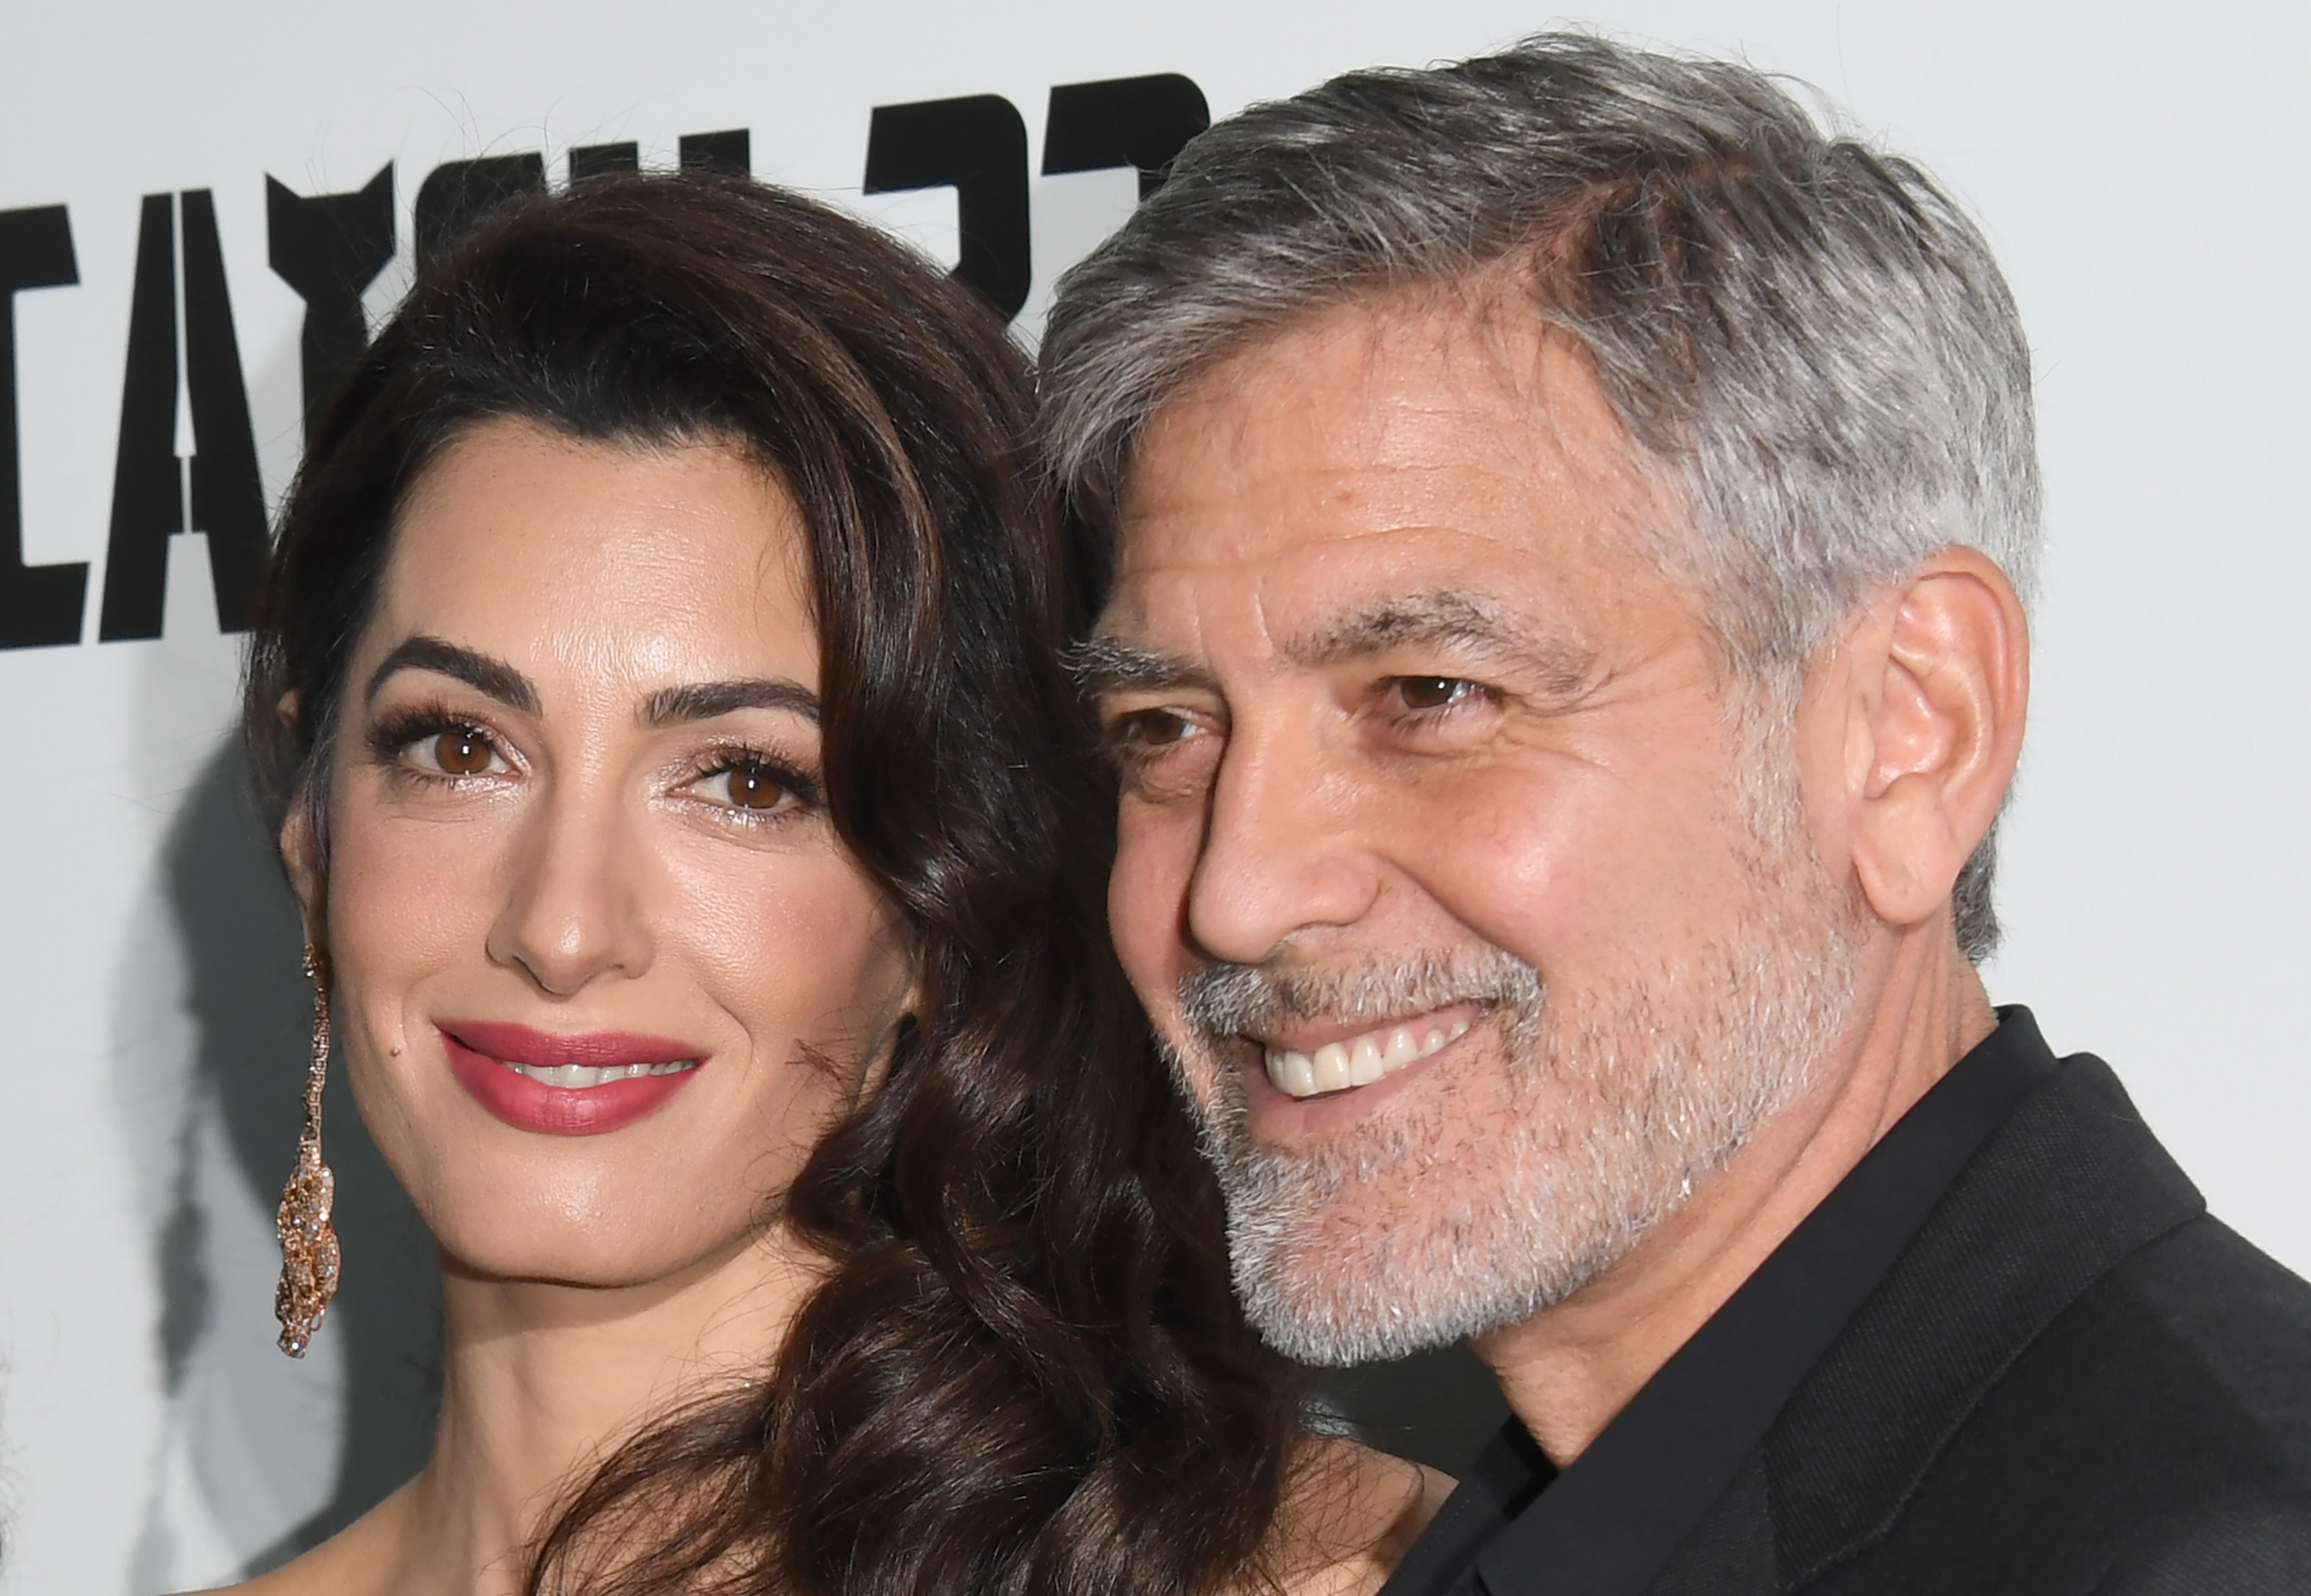 George Clooney recalls asking wife Amal to marry him: 'I was on my knee for like 20 minutes'